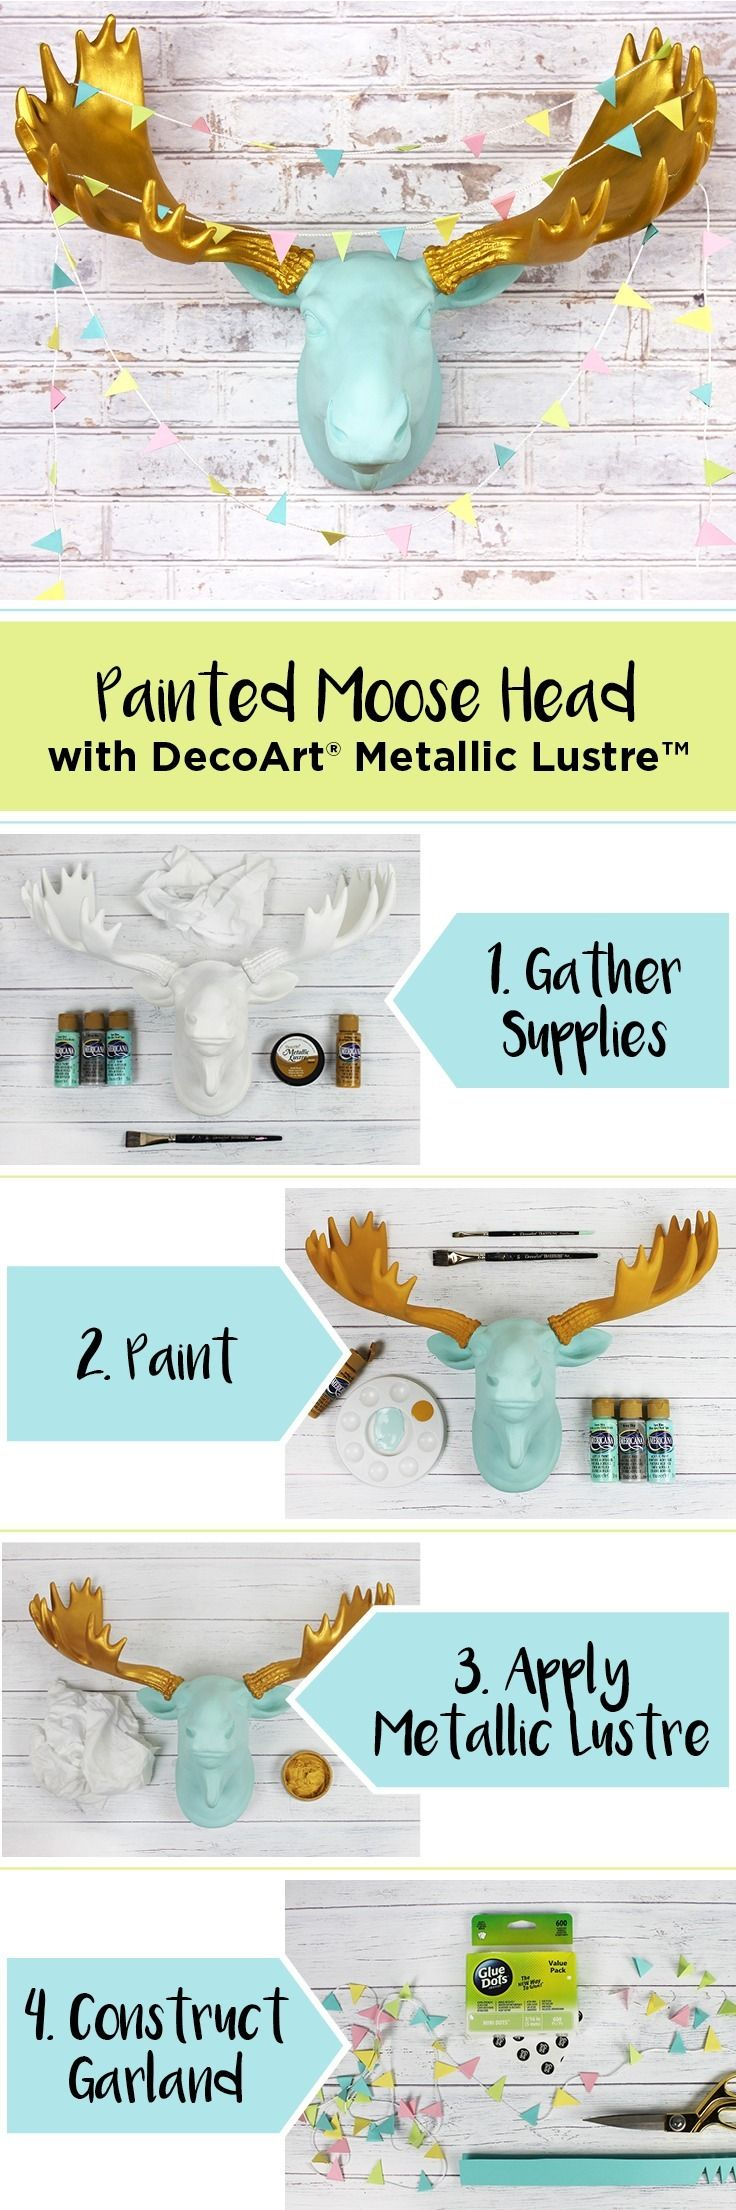 52 best metallic lustre images on pinterest | rose gold, diys and